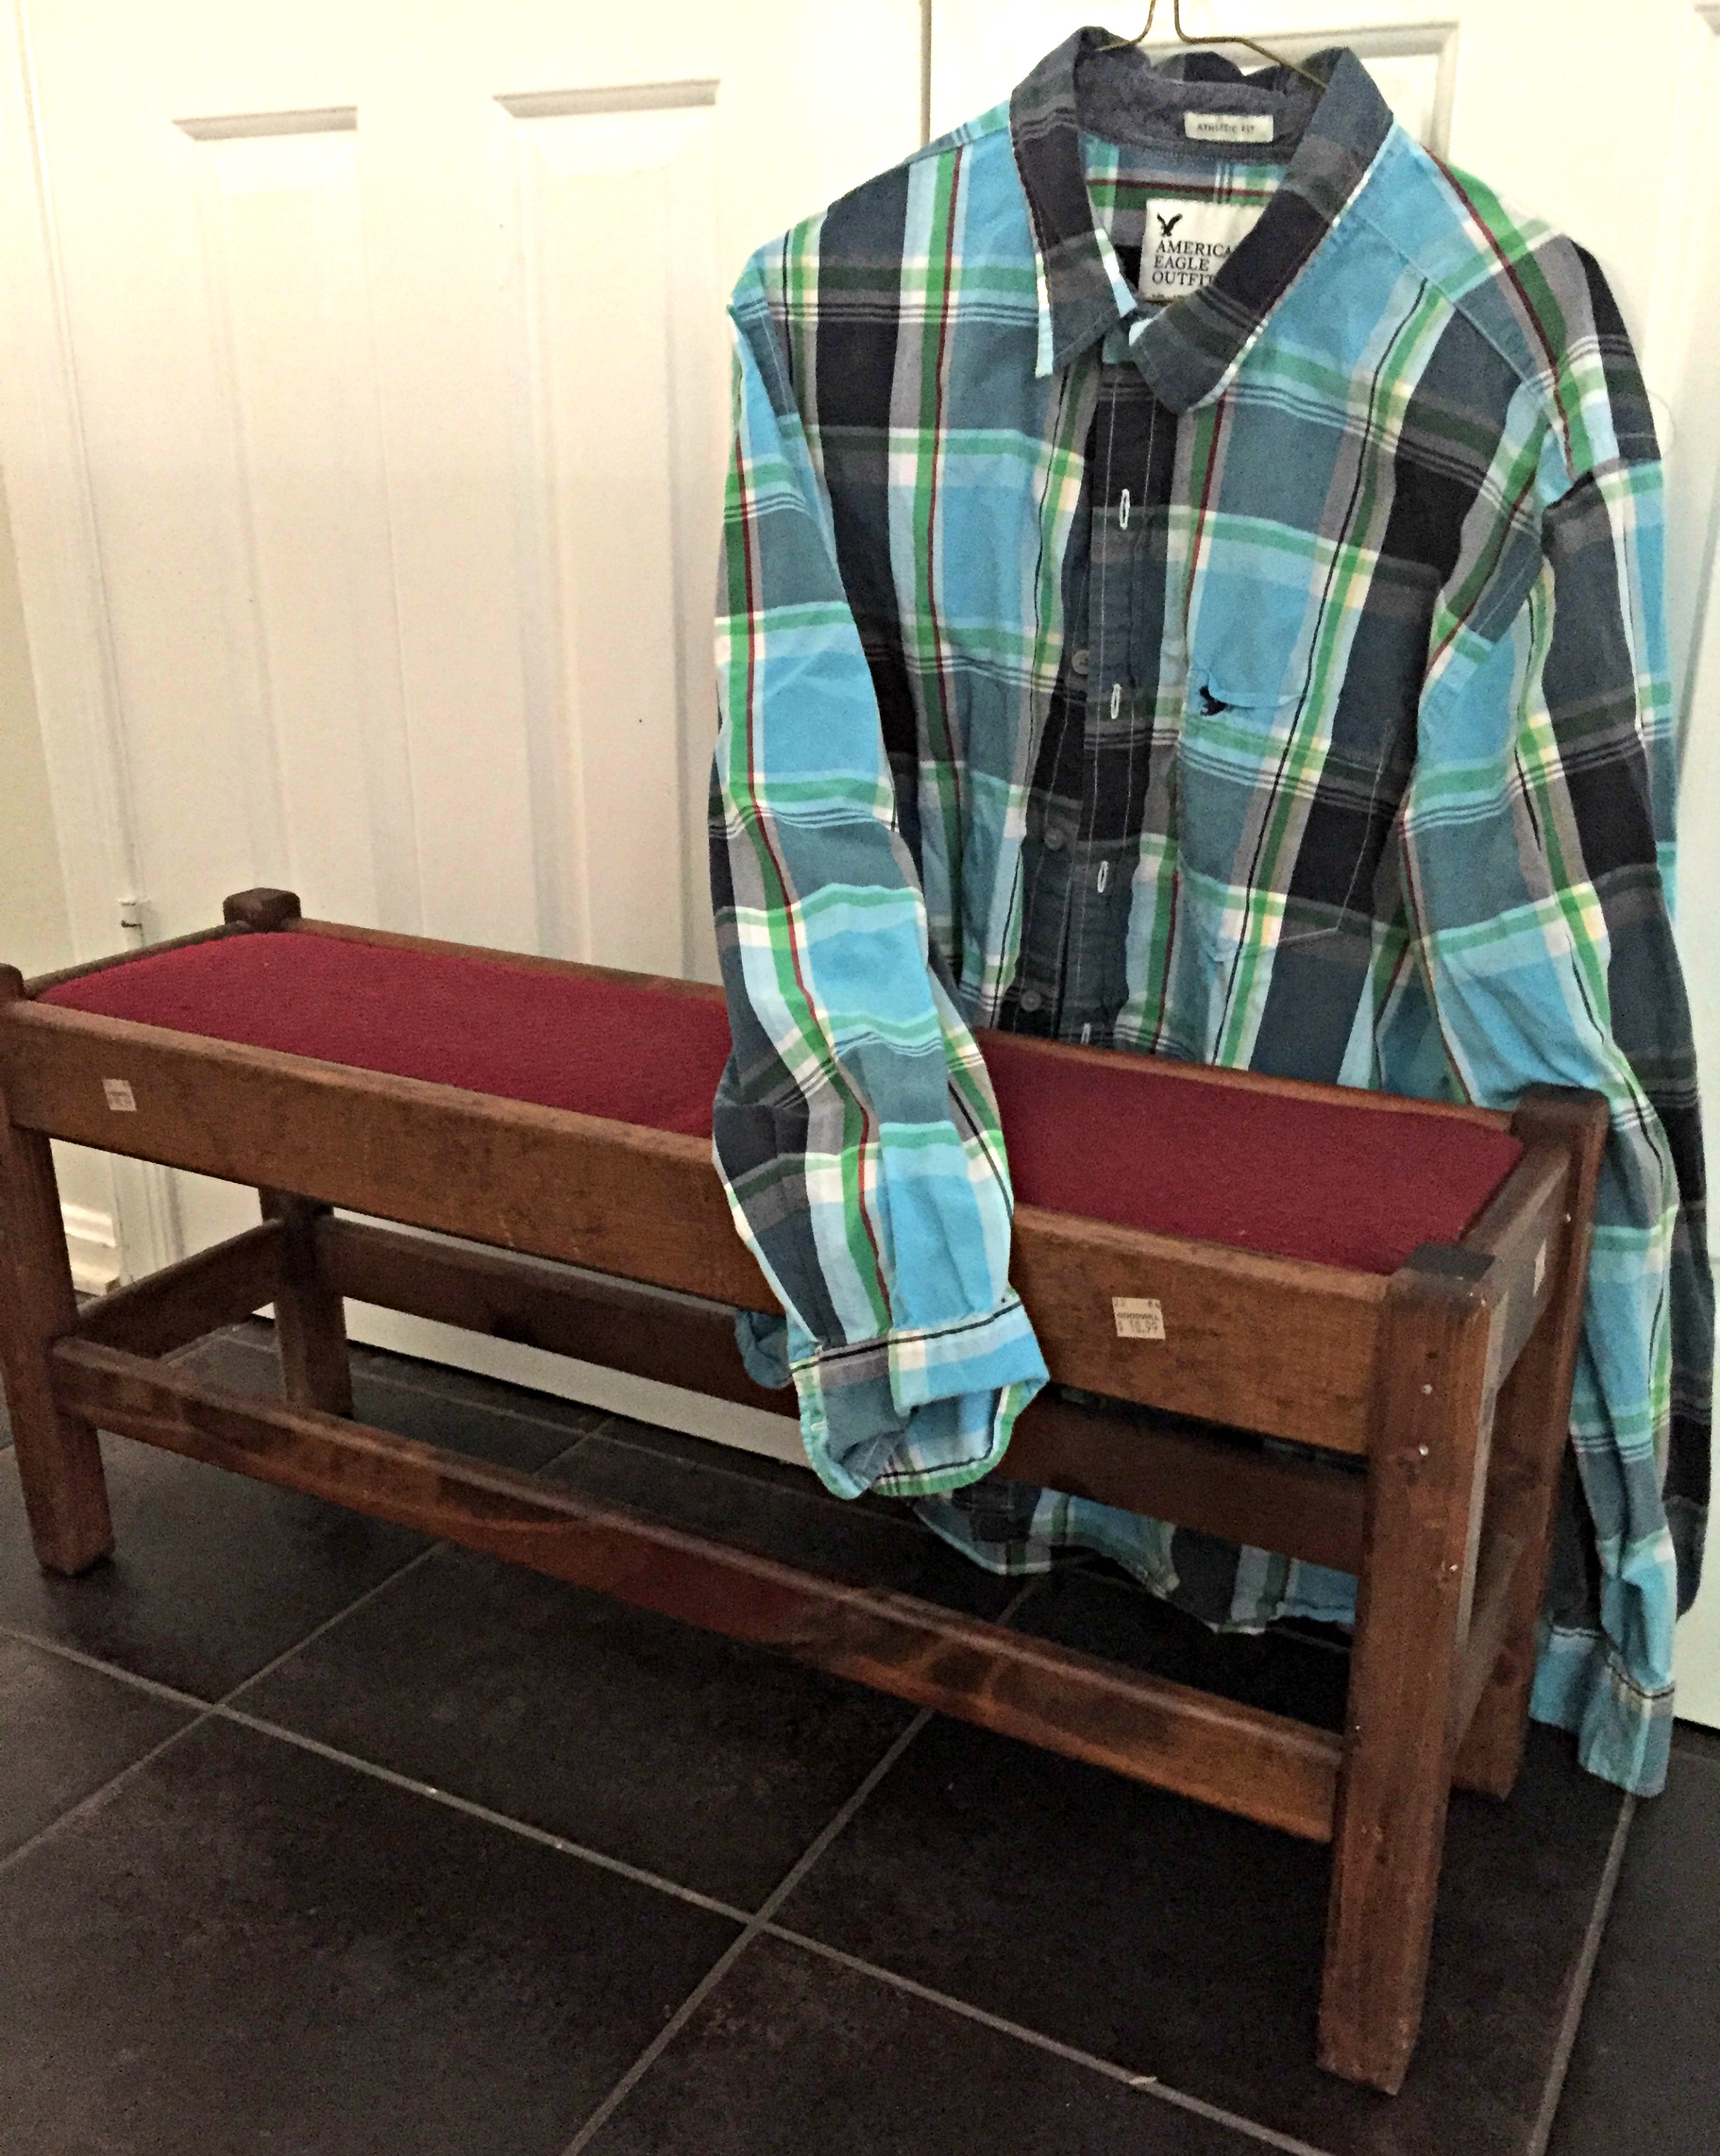 Bench and Shirt BEFORE SHOT